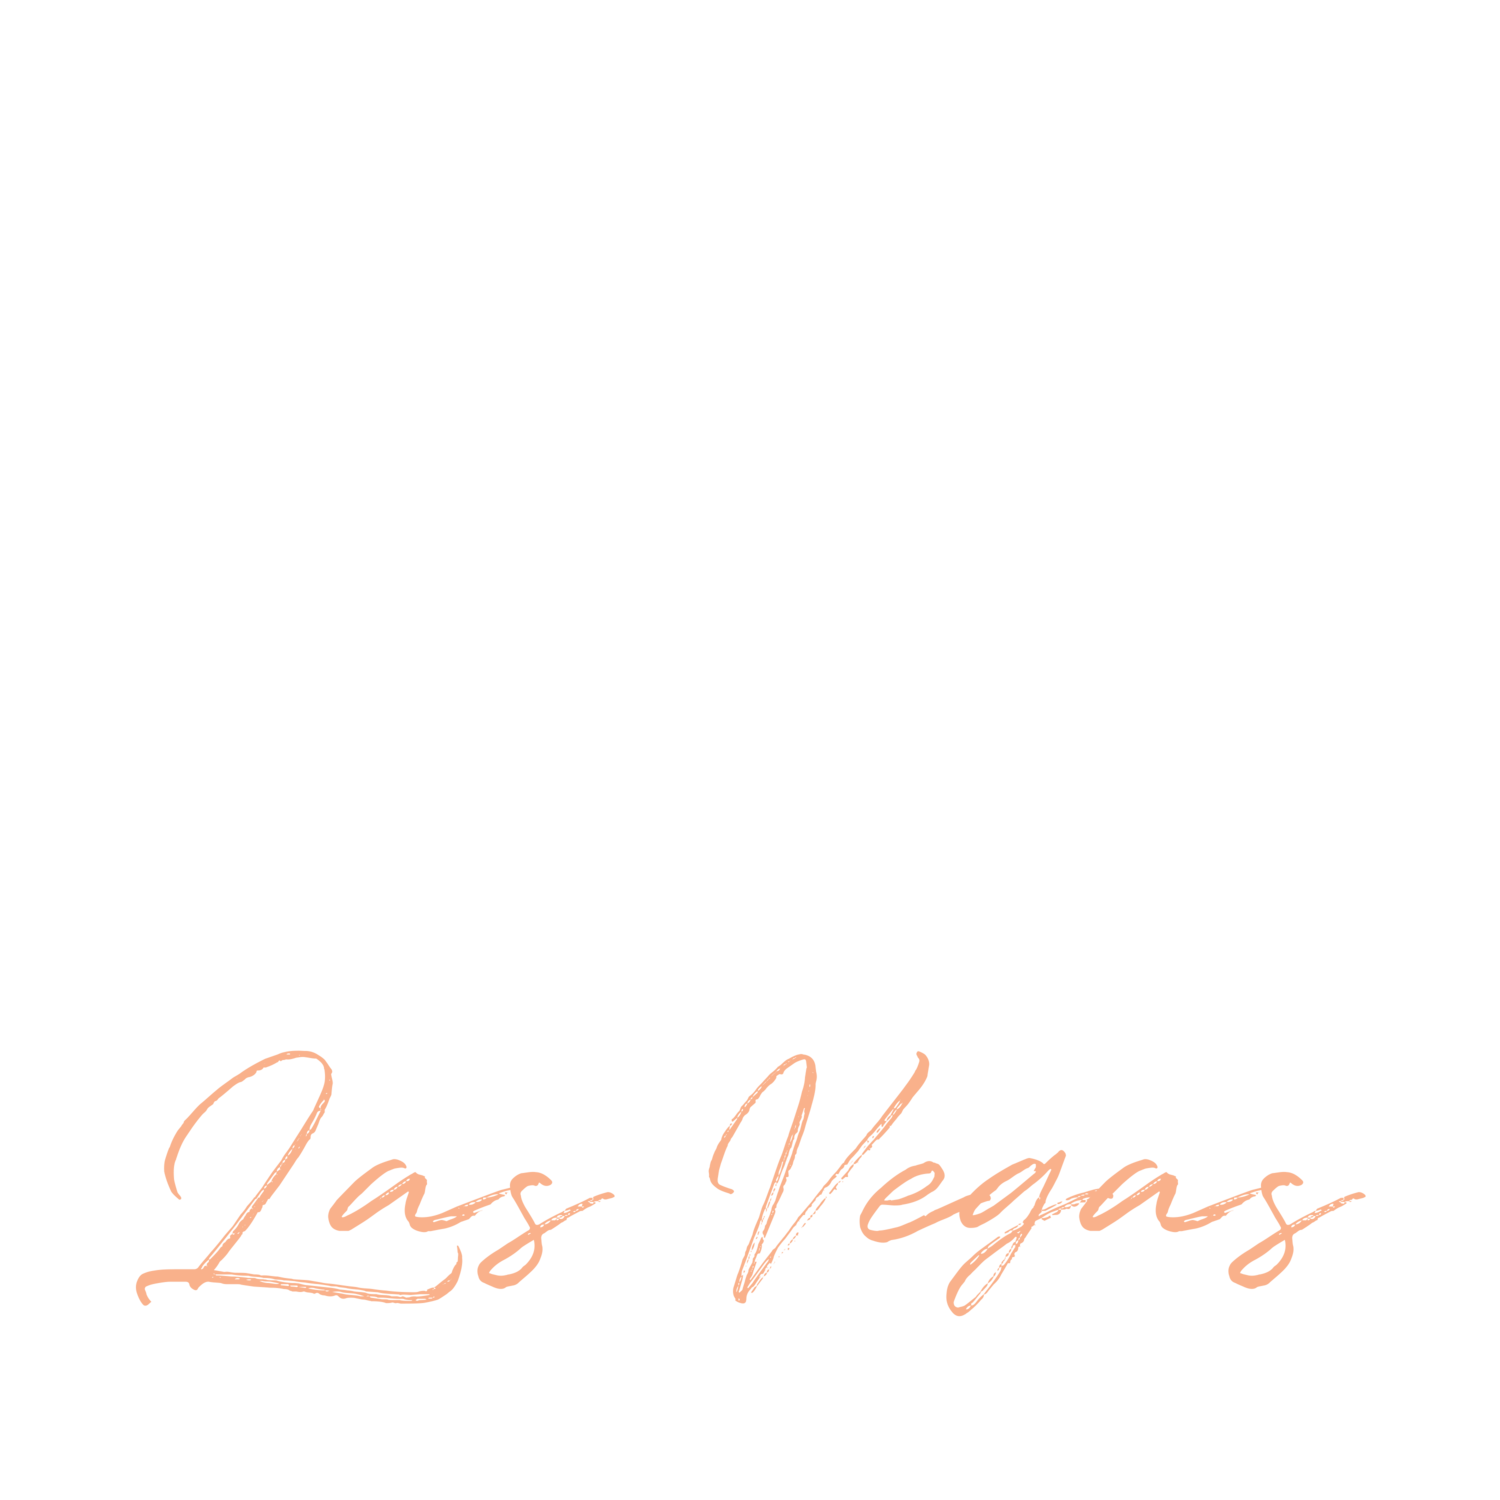 BEAUTY STUDIO INC